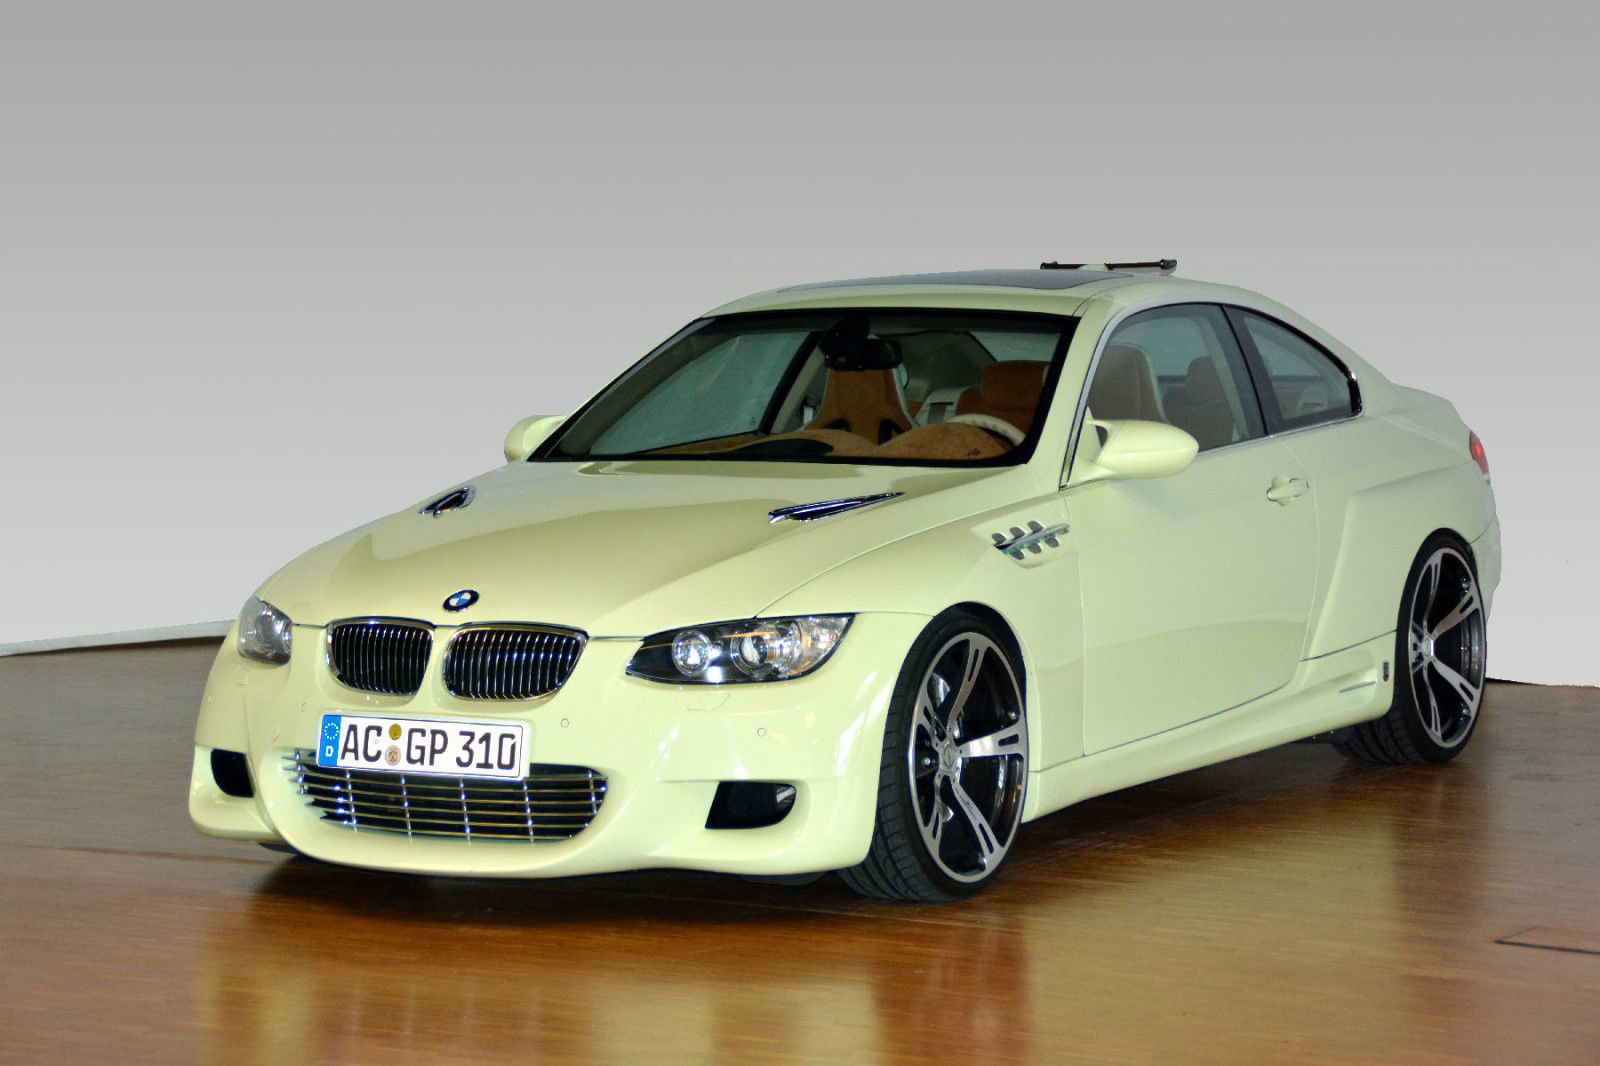 AC Schnitzer GP 3.10 Based on BMW E92 335i - On Sale